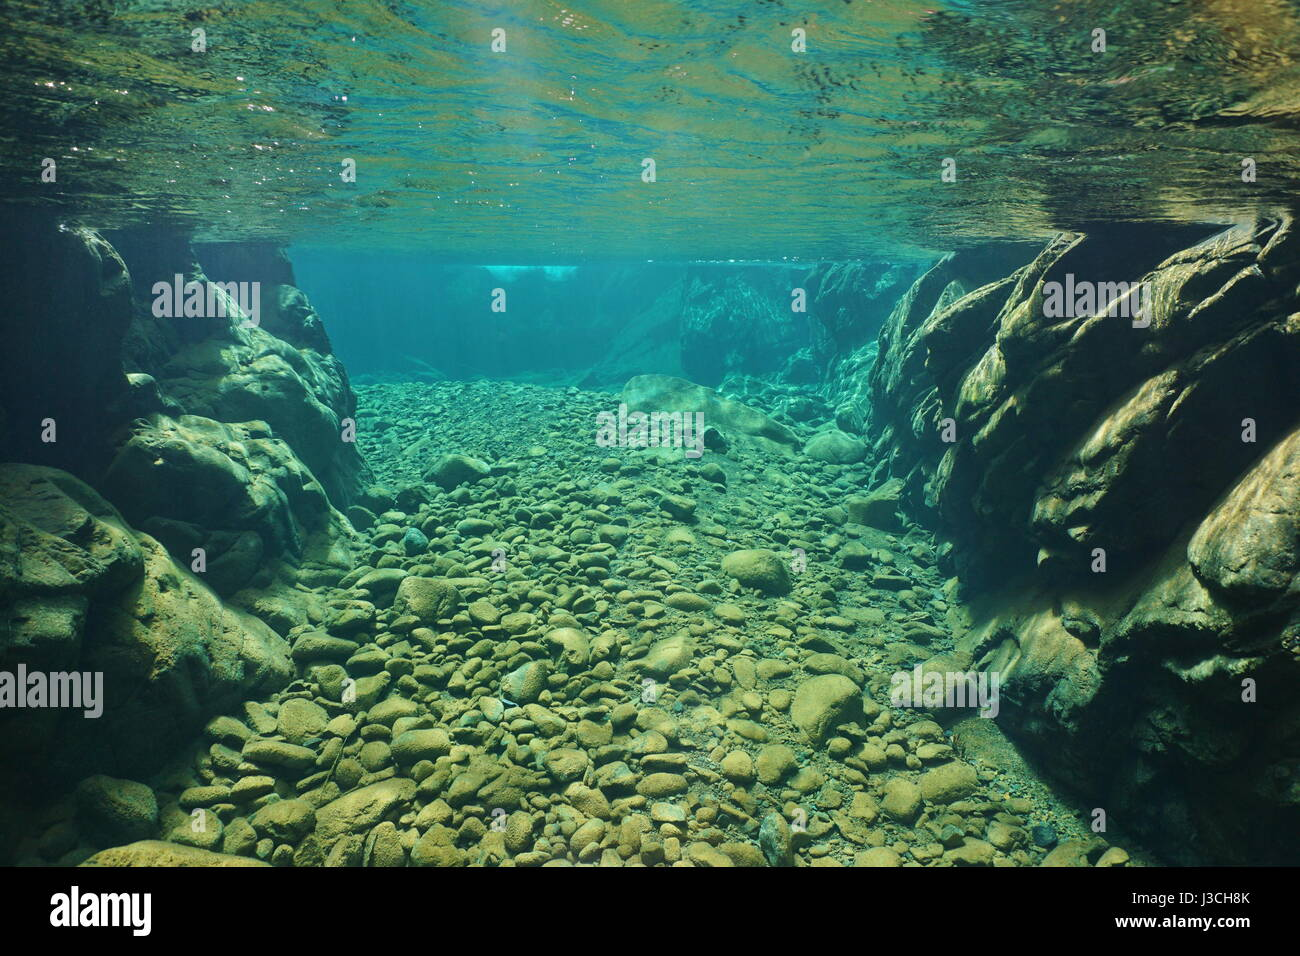 Rocks and pebbles underwater in a river with clear freshwater, Dumbea, New Caledonia, south Pacific Stock Photo